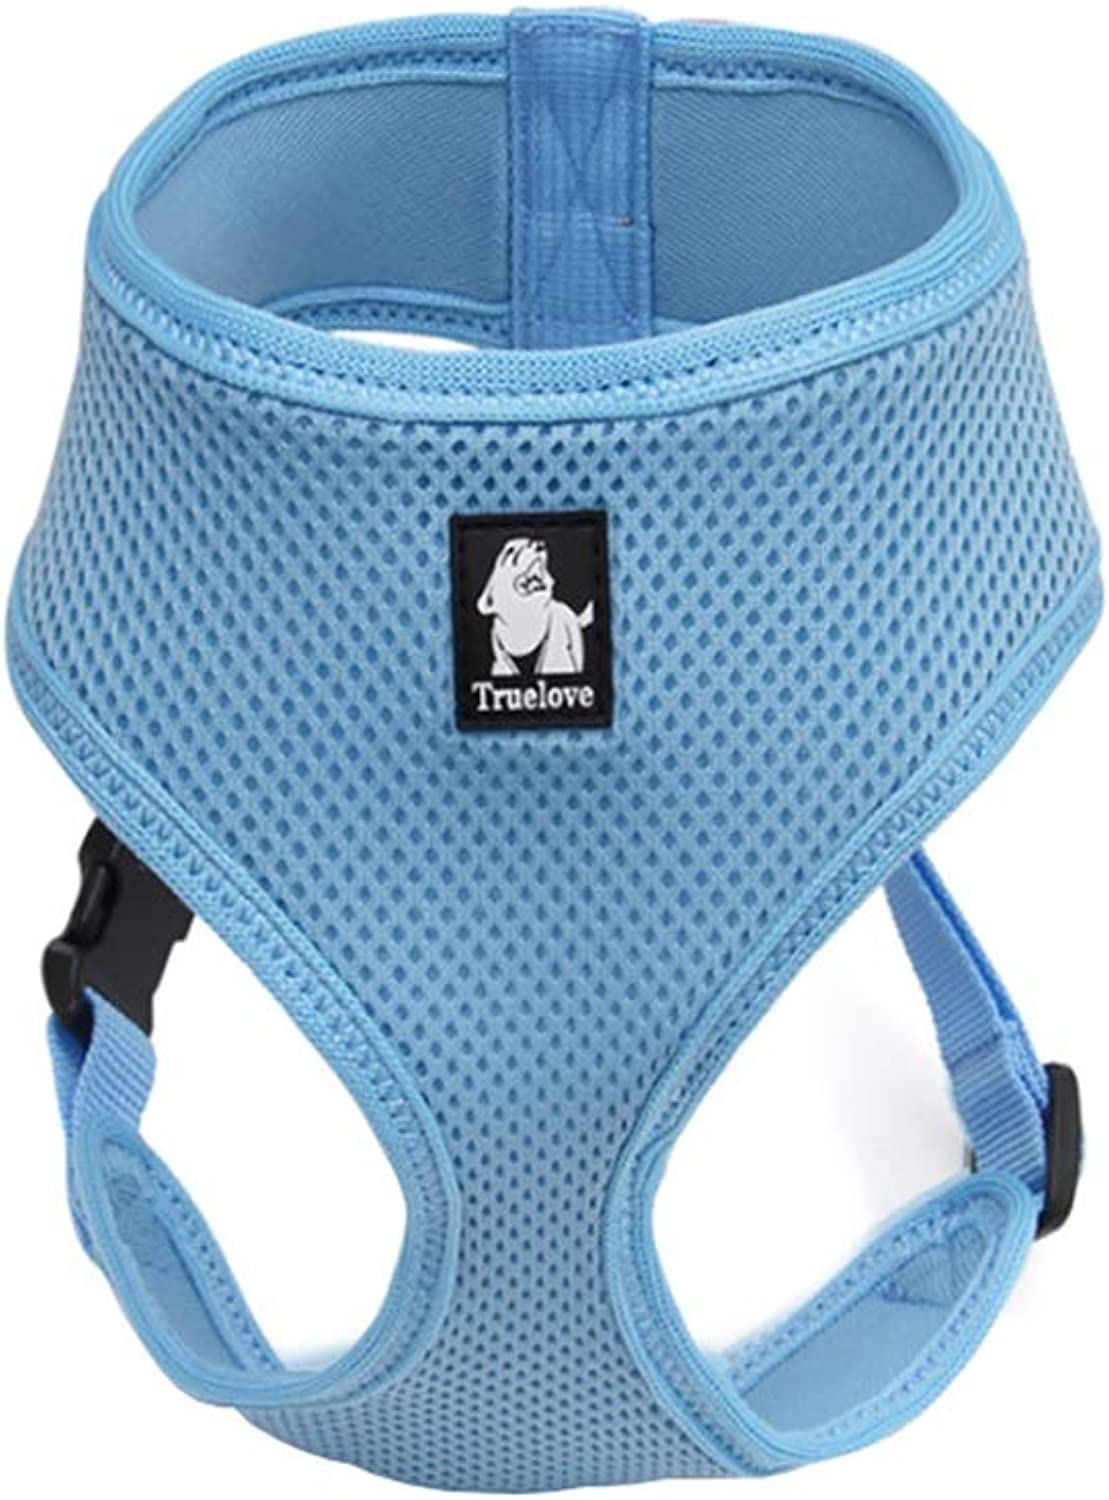 Dog Vest Harness, NoPull Adjustable Chest Strap Cat Supplies Pet Buffering Comfortable Breathable Harness for Teddy Medium Large Dogs (color   bluee, Size   S)